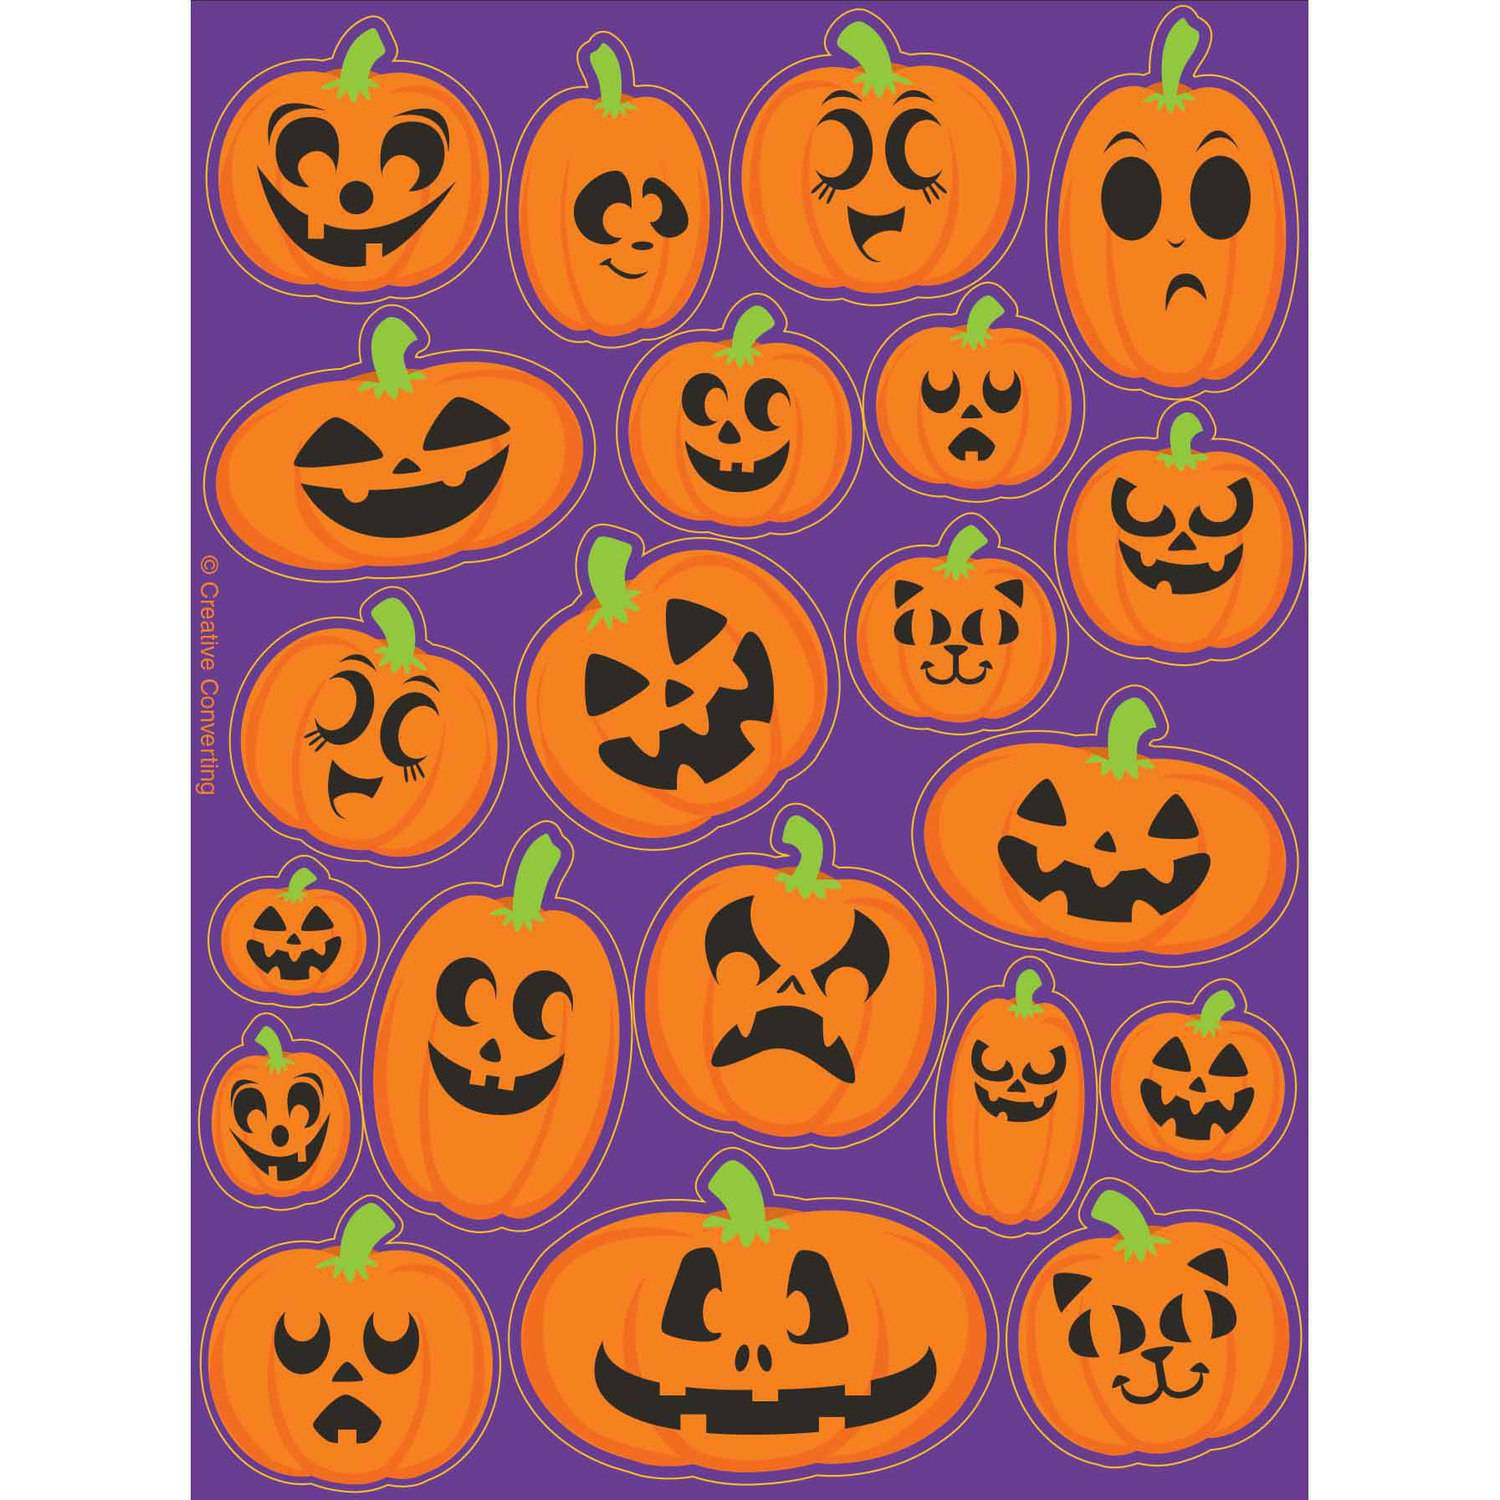 Pumpkin Faces Stickers, 4-Pack